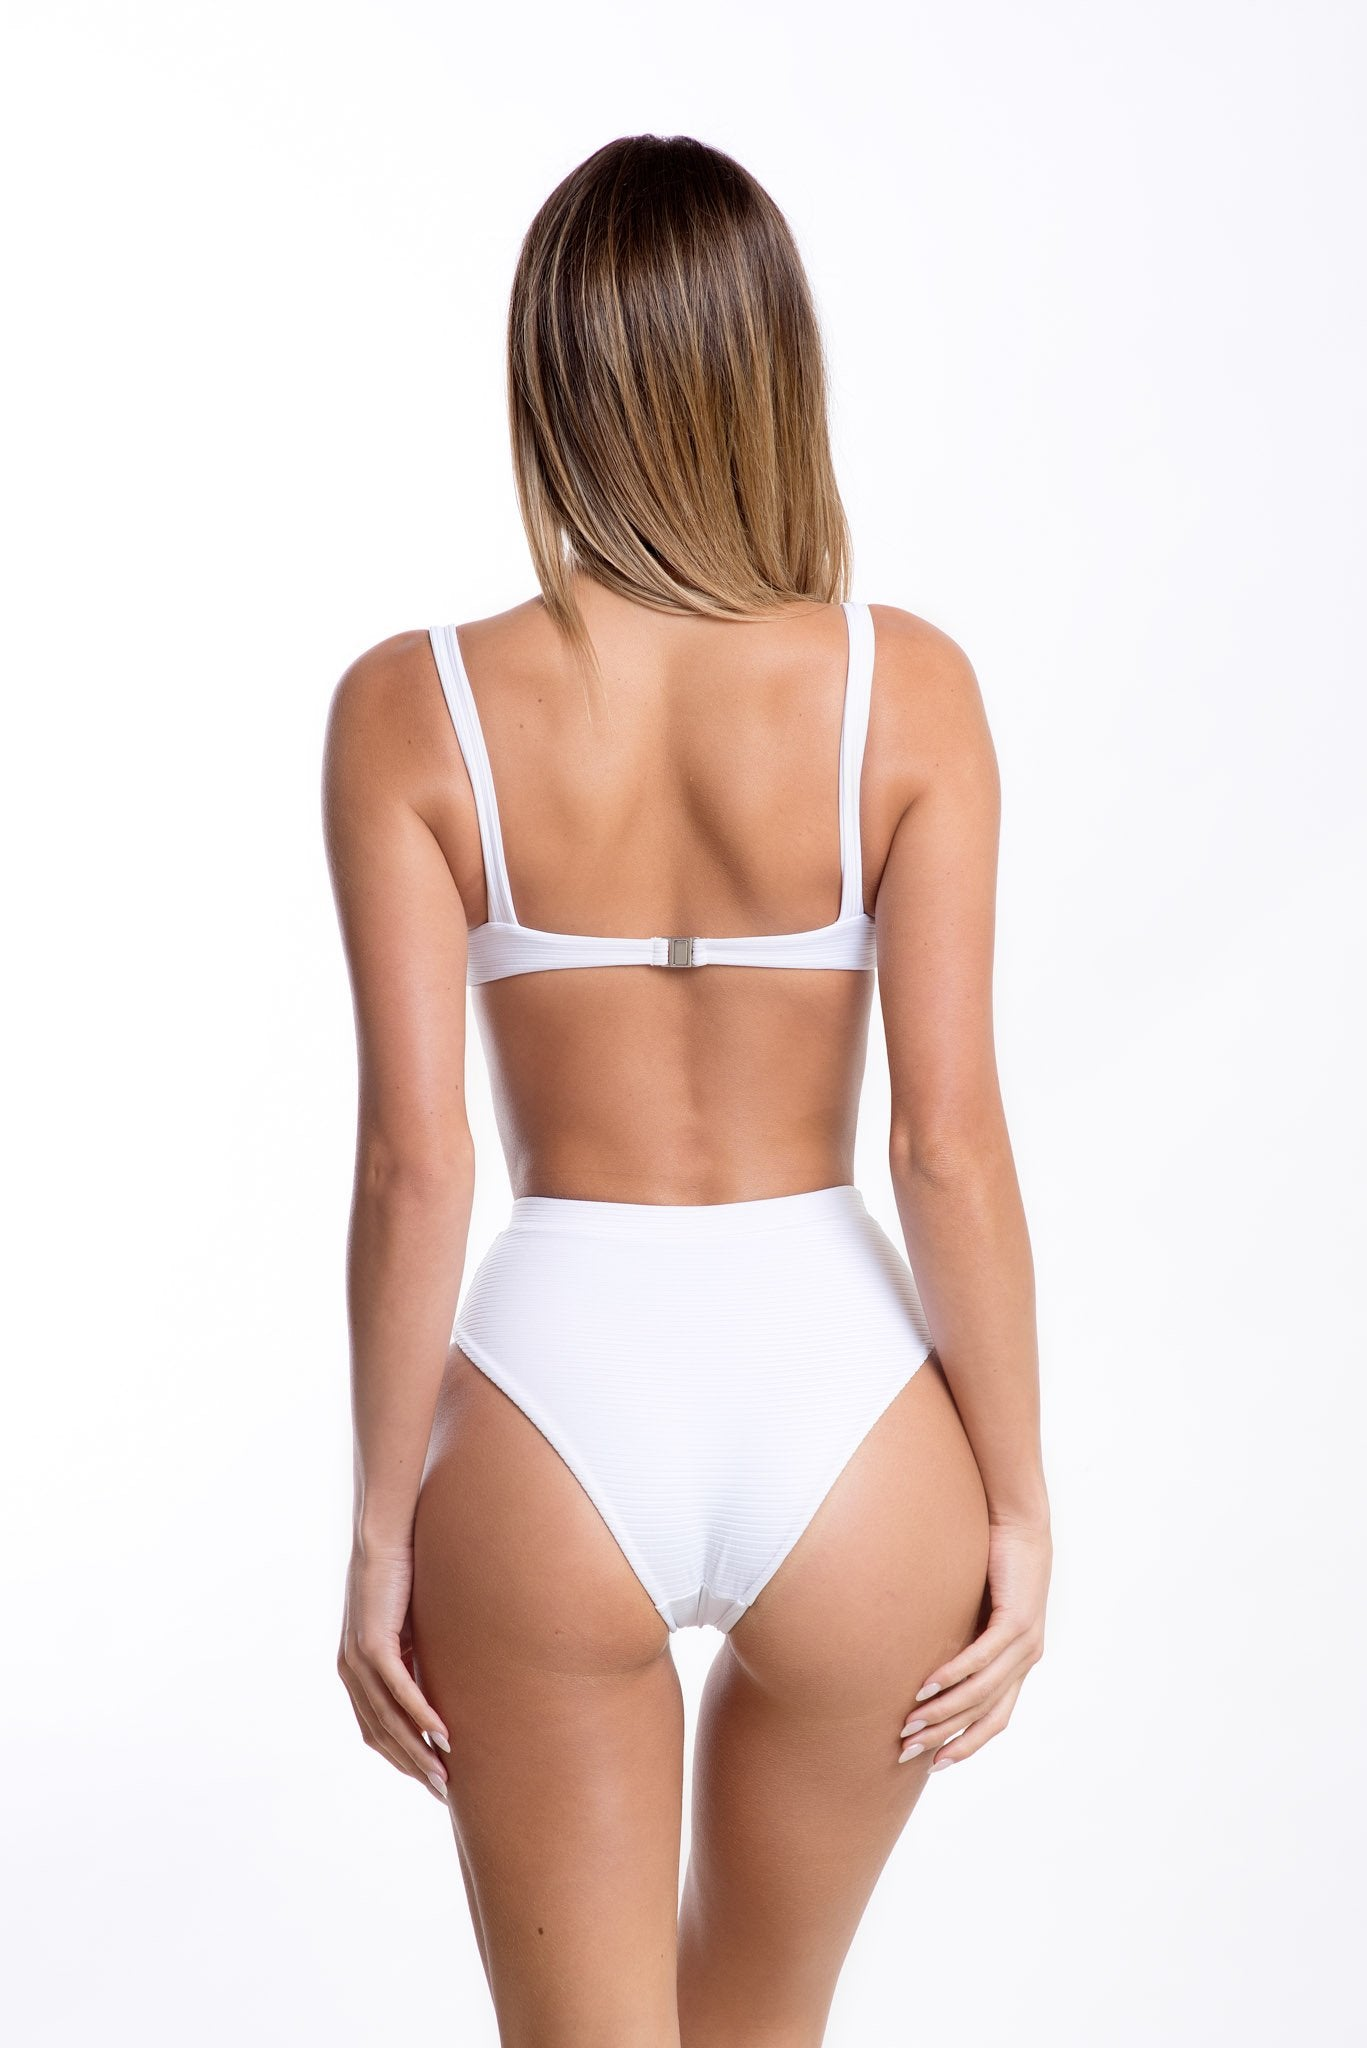 Estelle Top White Rib